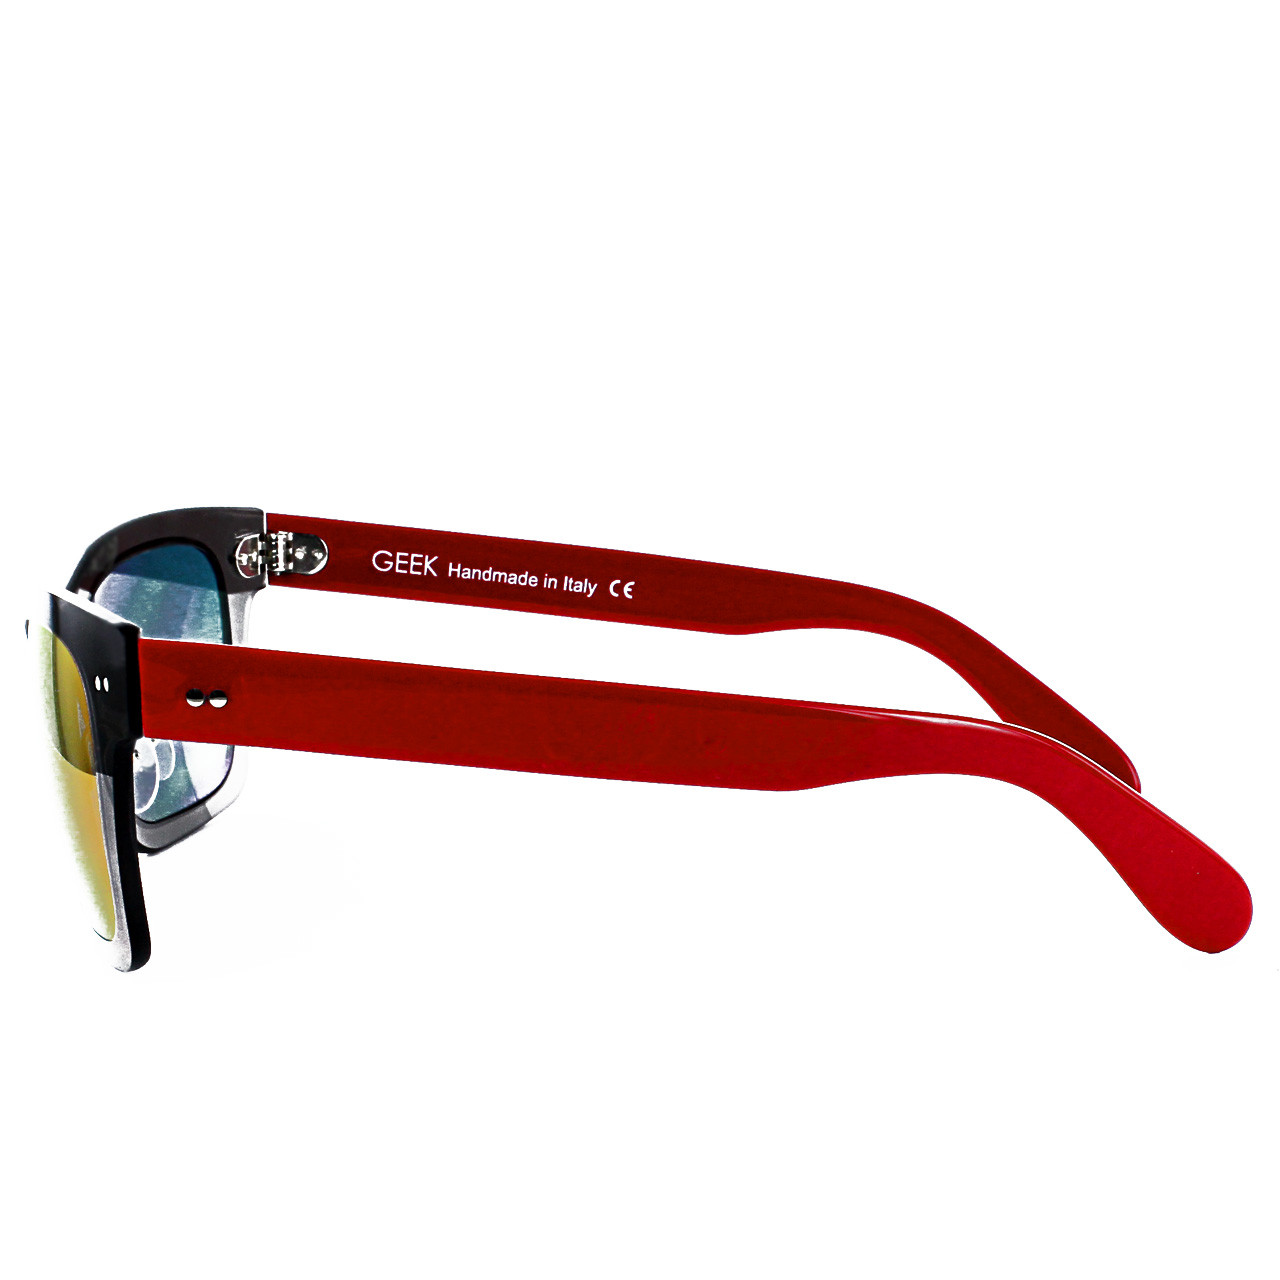 7eb5ce79e49 ... GEEK Couture Style Vegas Sunglasses Affordable Luxury ...